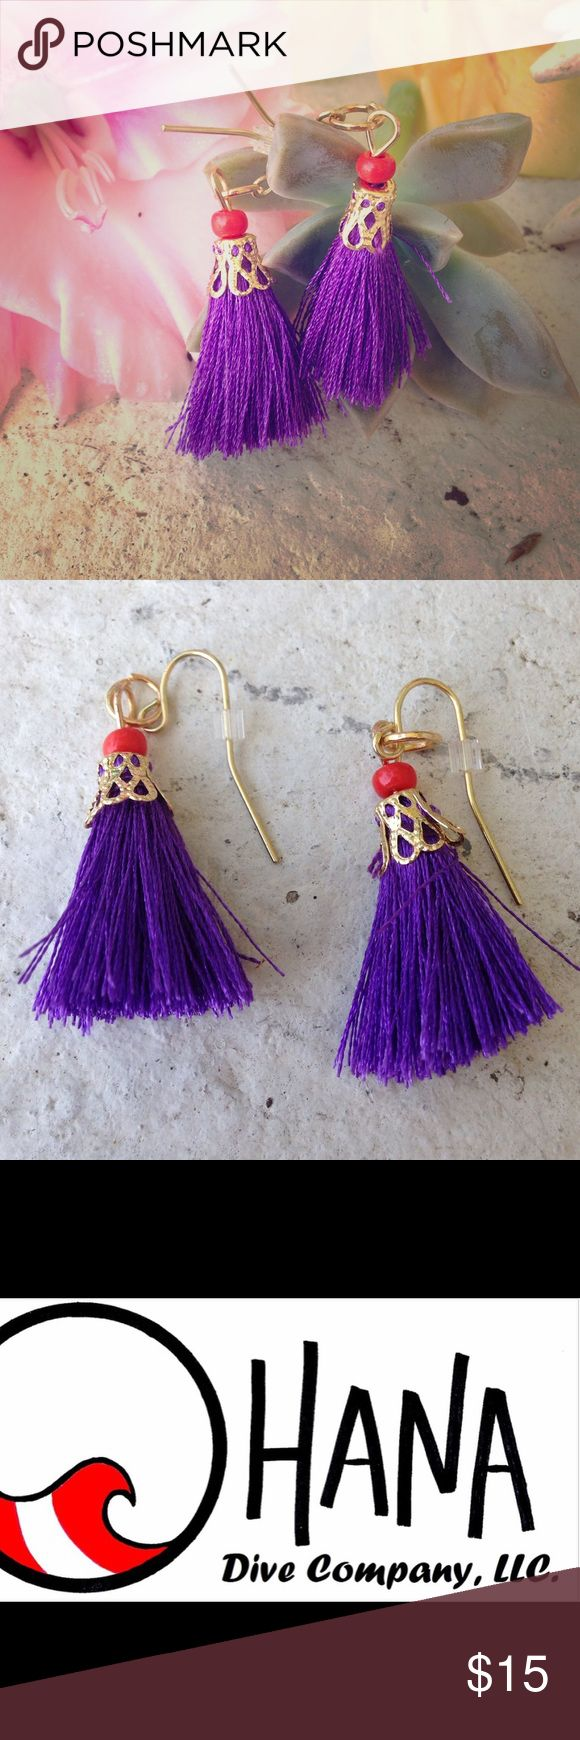 Royal purple tassel earrings Really fun to add to a summer out fit! The tassels are about the size of a quarter. Perfect for that beach surfer girl! All shark teeth products are shark safe and no sharks were harmed in the making of our jewelry! On trend right now! Boho chic! Ocean, beach, tropical, tassel, seashell, shark tooth. Scuba dive, turquoise, purple, pink. Necklace mermaid The Ohana Dive Company Jewelry